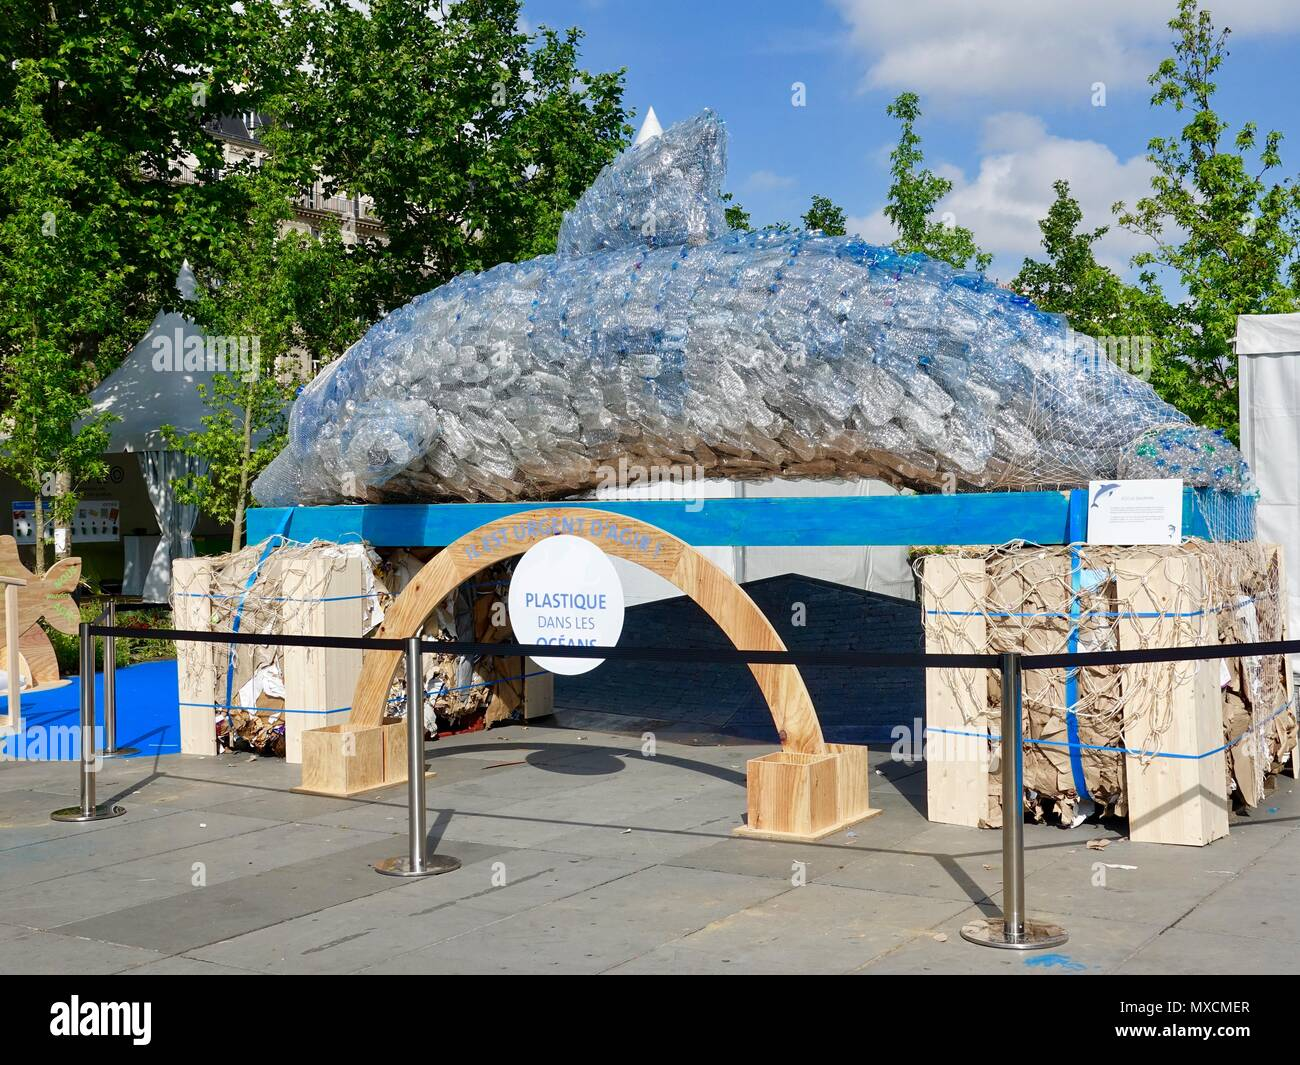 Eco the Dolphin, created by Gad Weil and team to emphisize the importance of recycling to protect our oceans. Place République, Paris, France Stock Photo